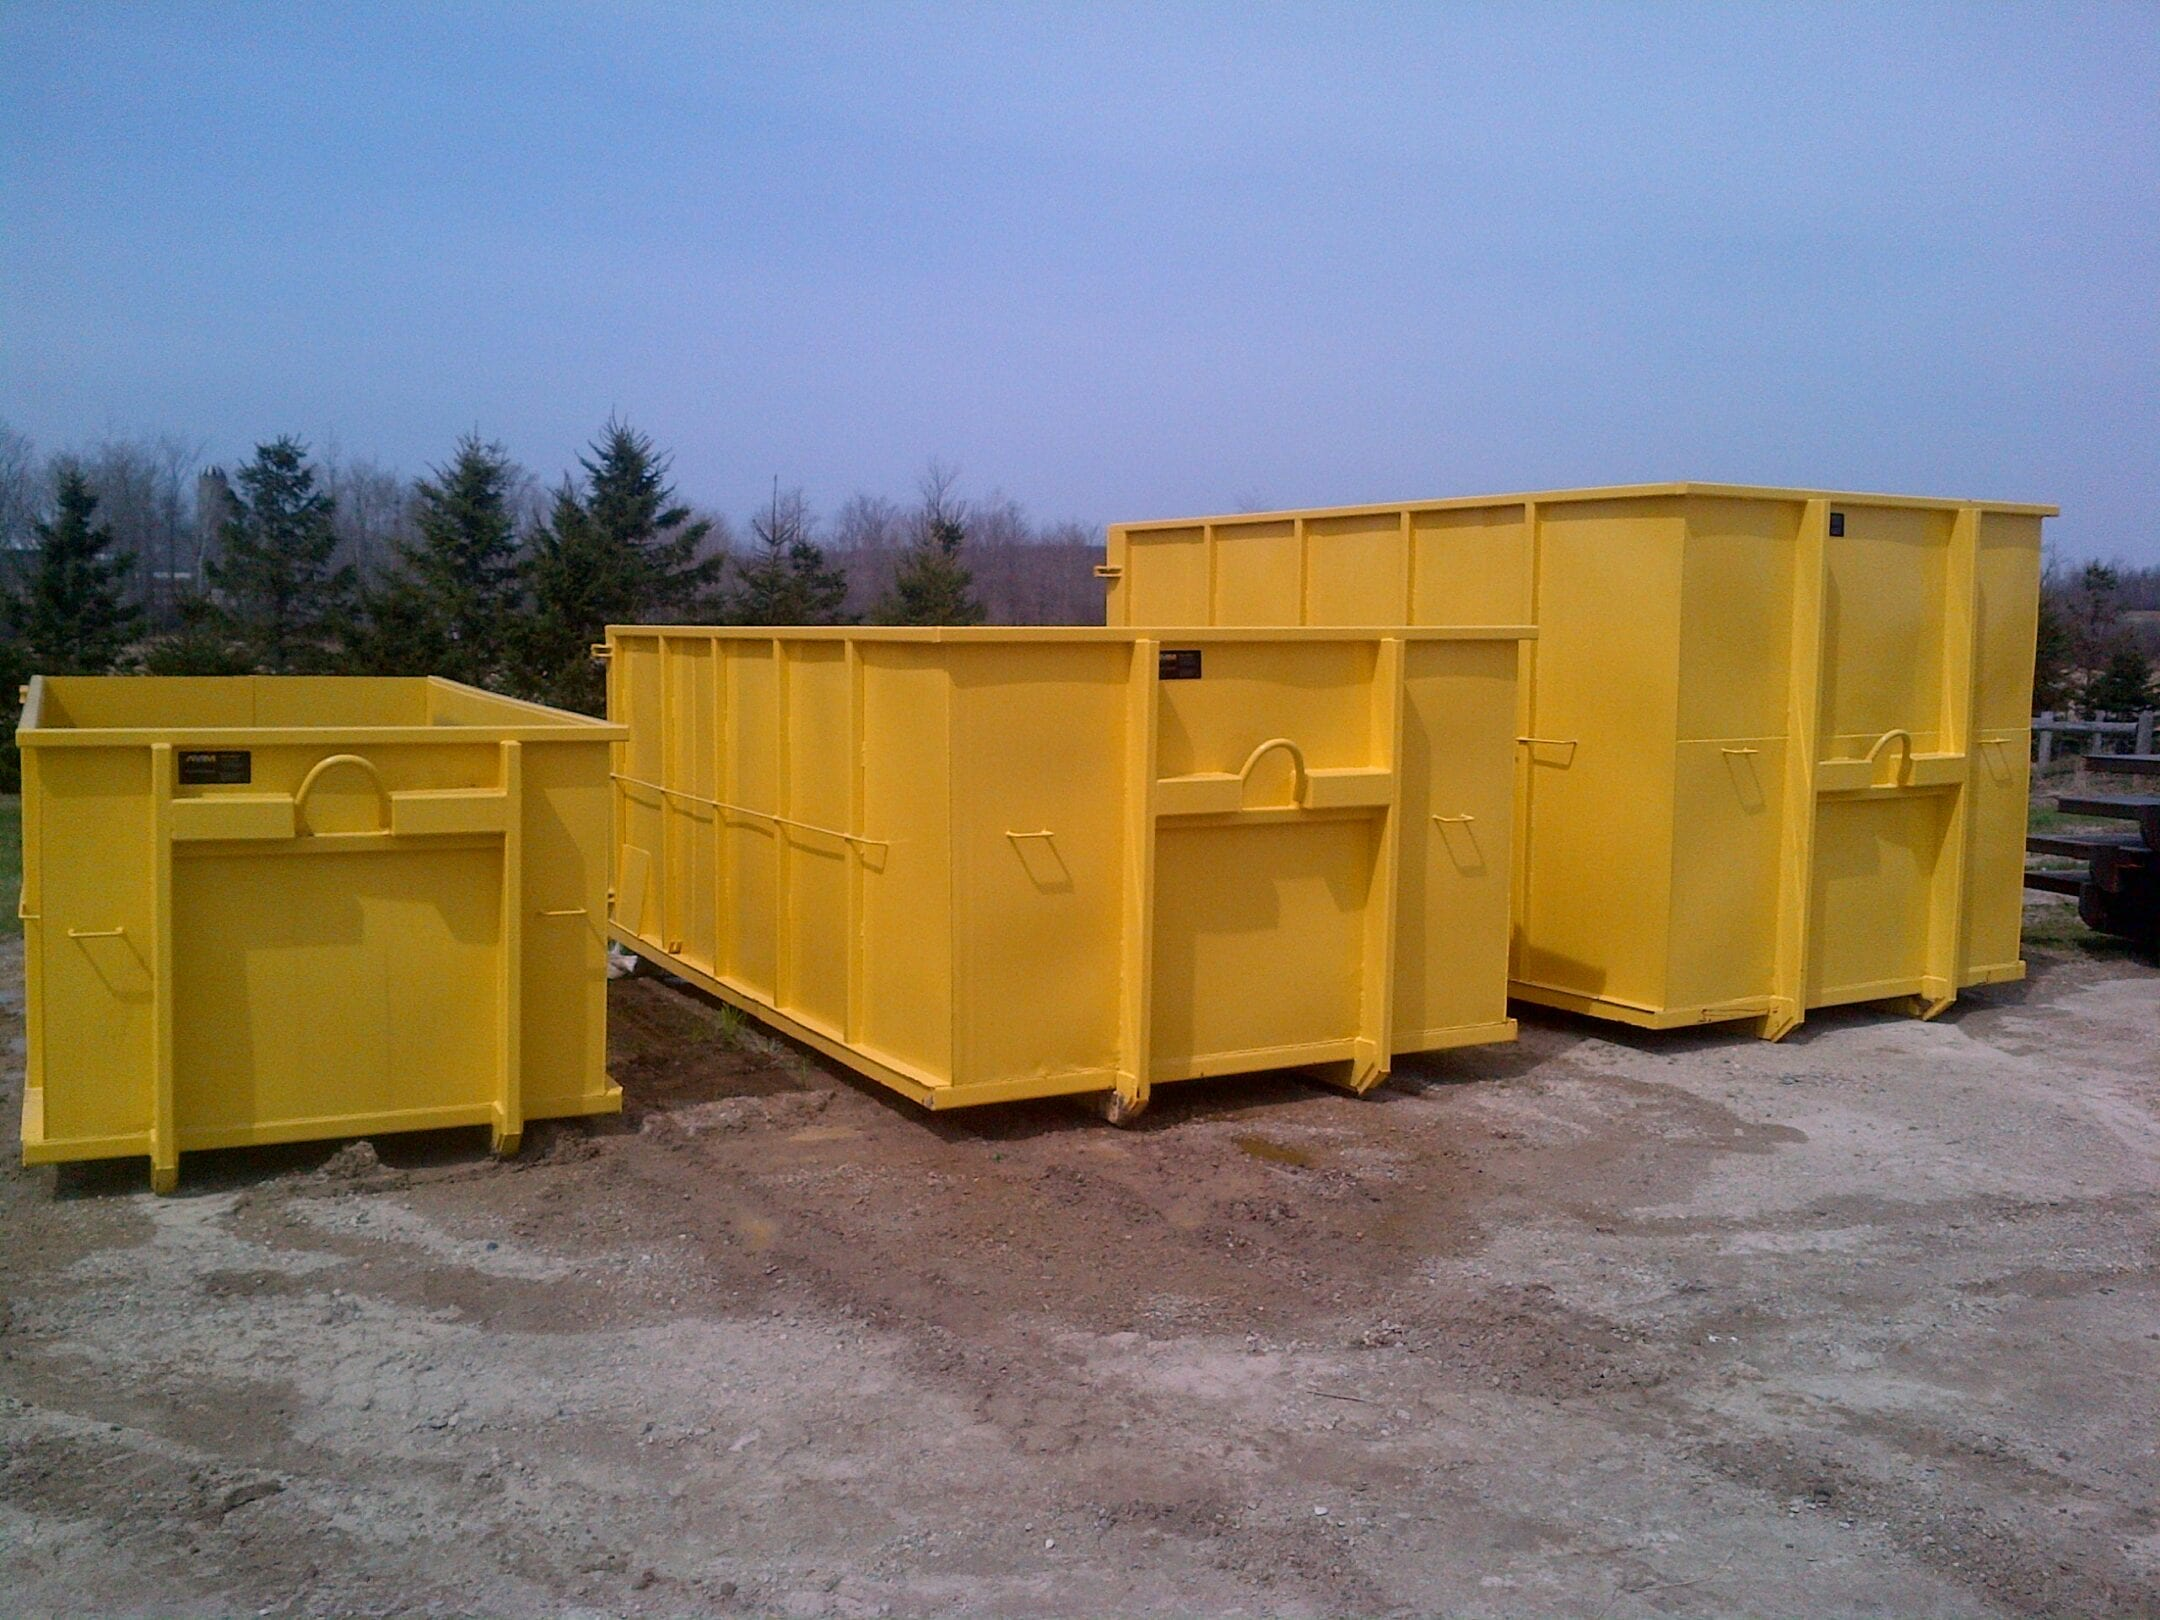 Refurbished Shipping Containers For Sale 10 Yard Hook Lift Containers For Sale